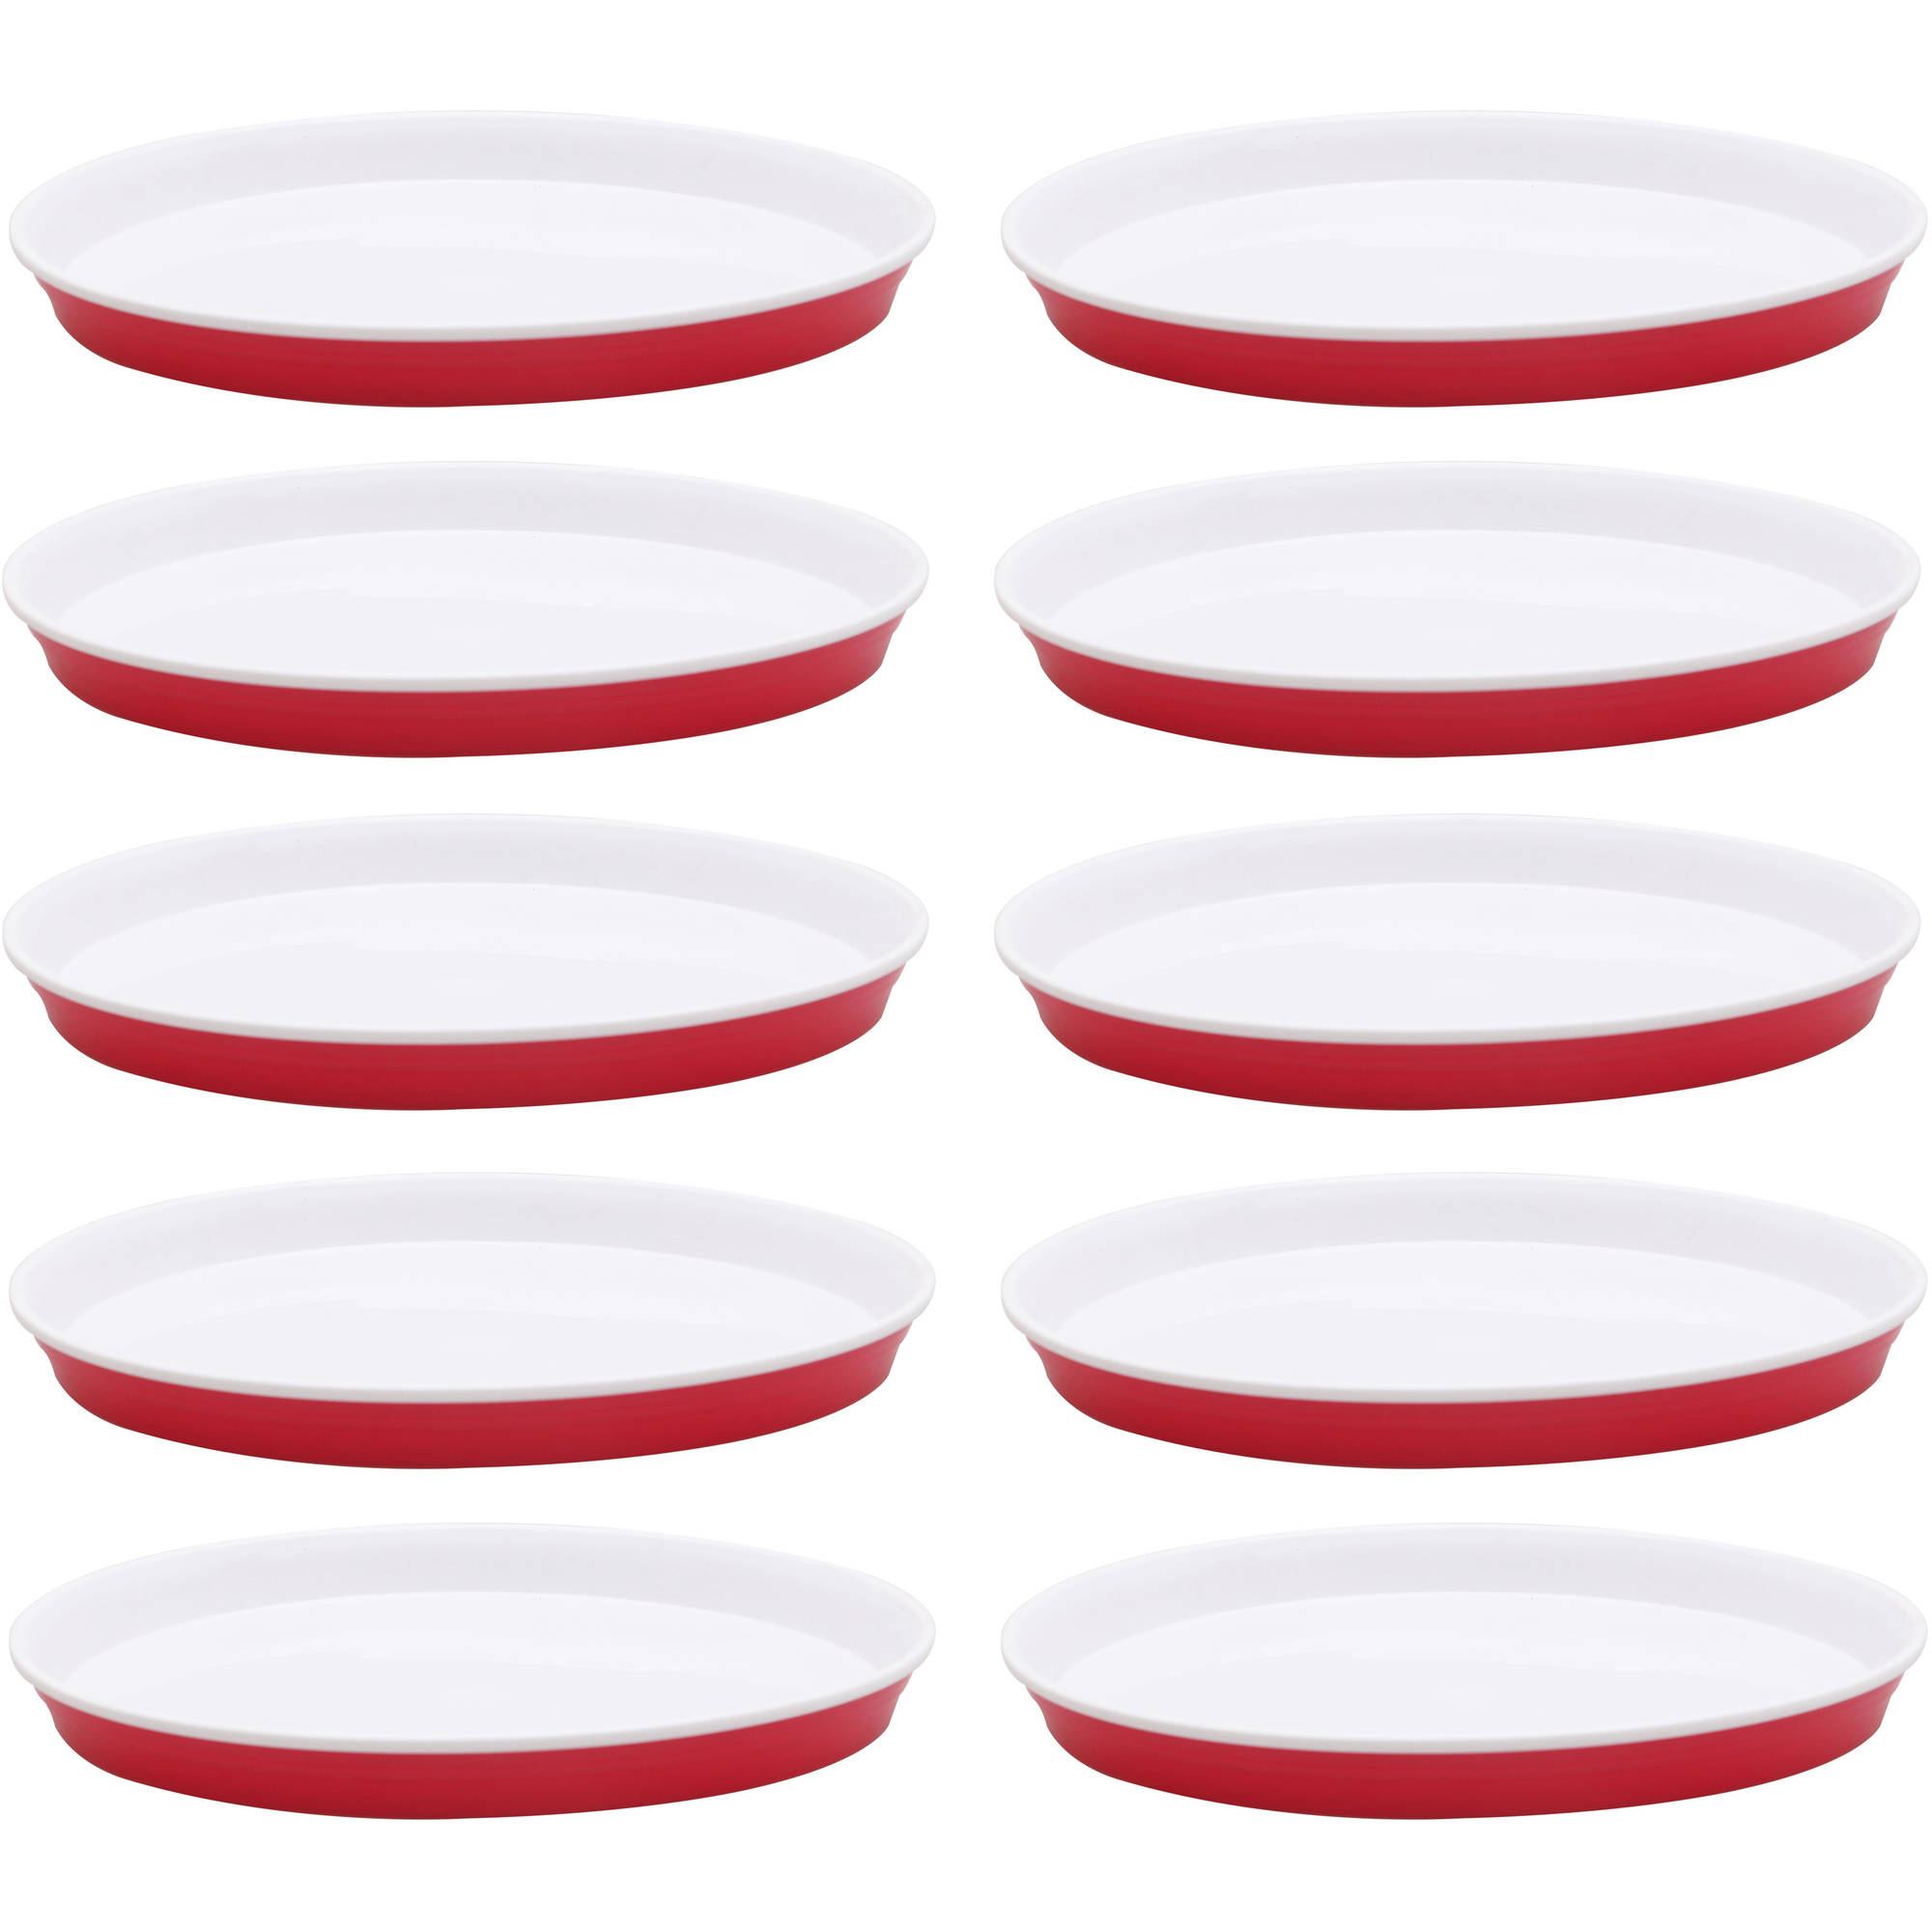 Better Homes and Garden Party Plates 10-Pack, Red